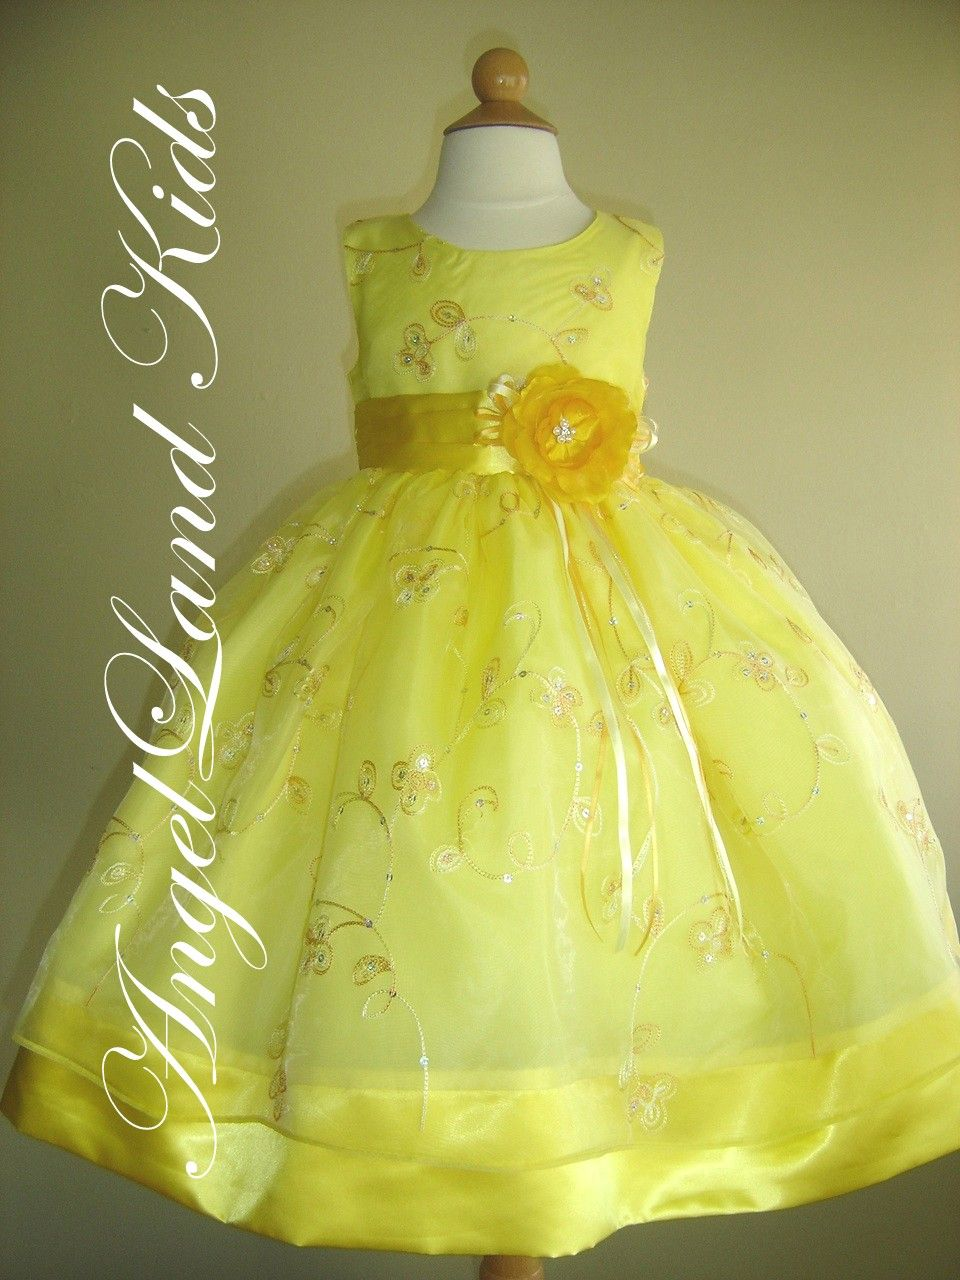 easter dresses | ... Girls Yellow Easter Dresses Beautiful Girls ...